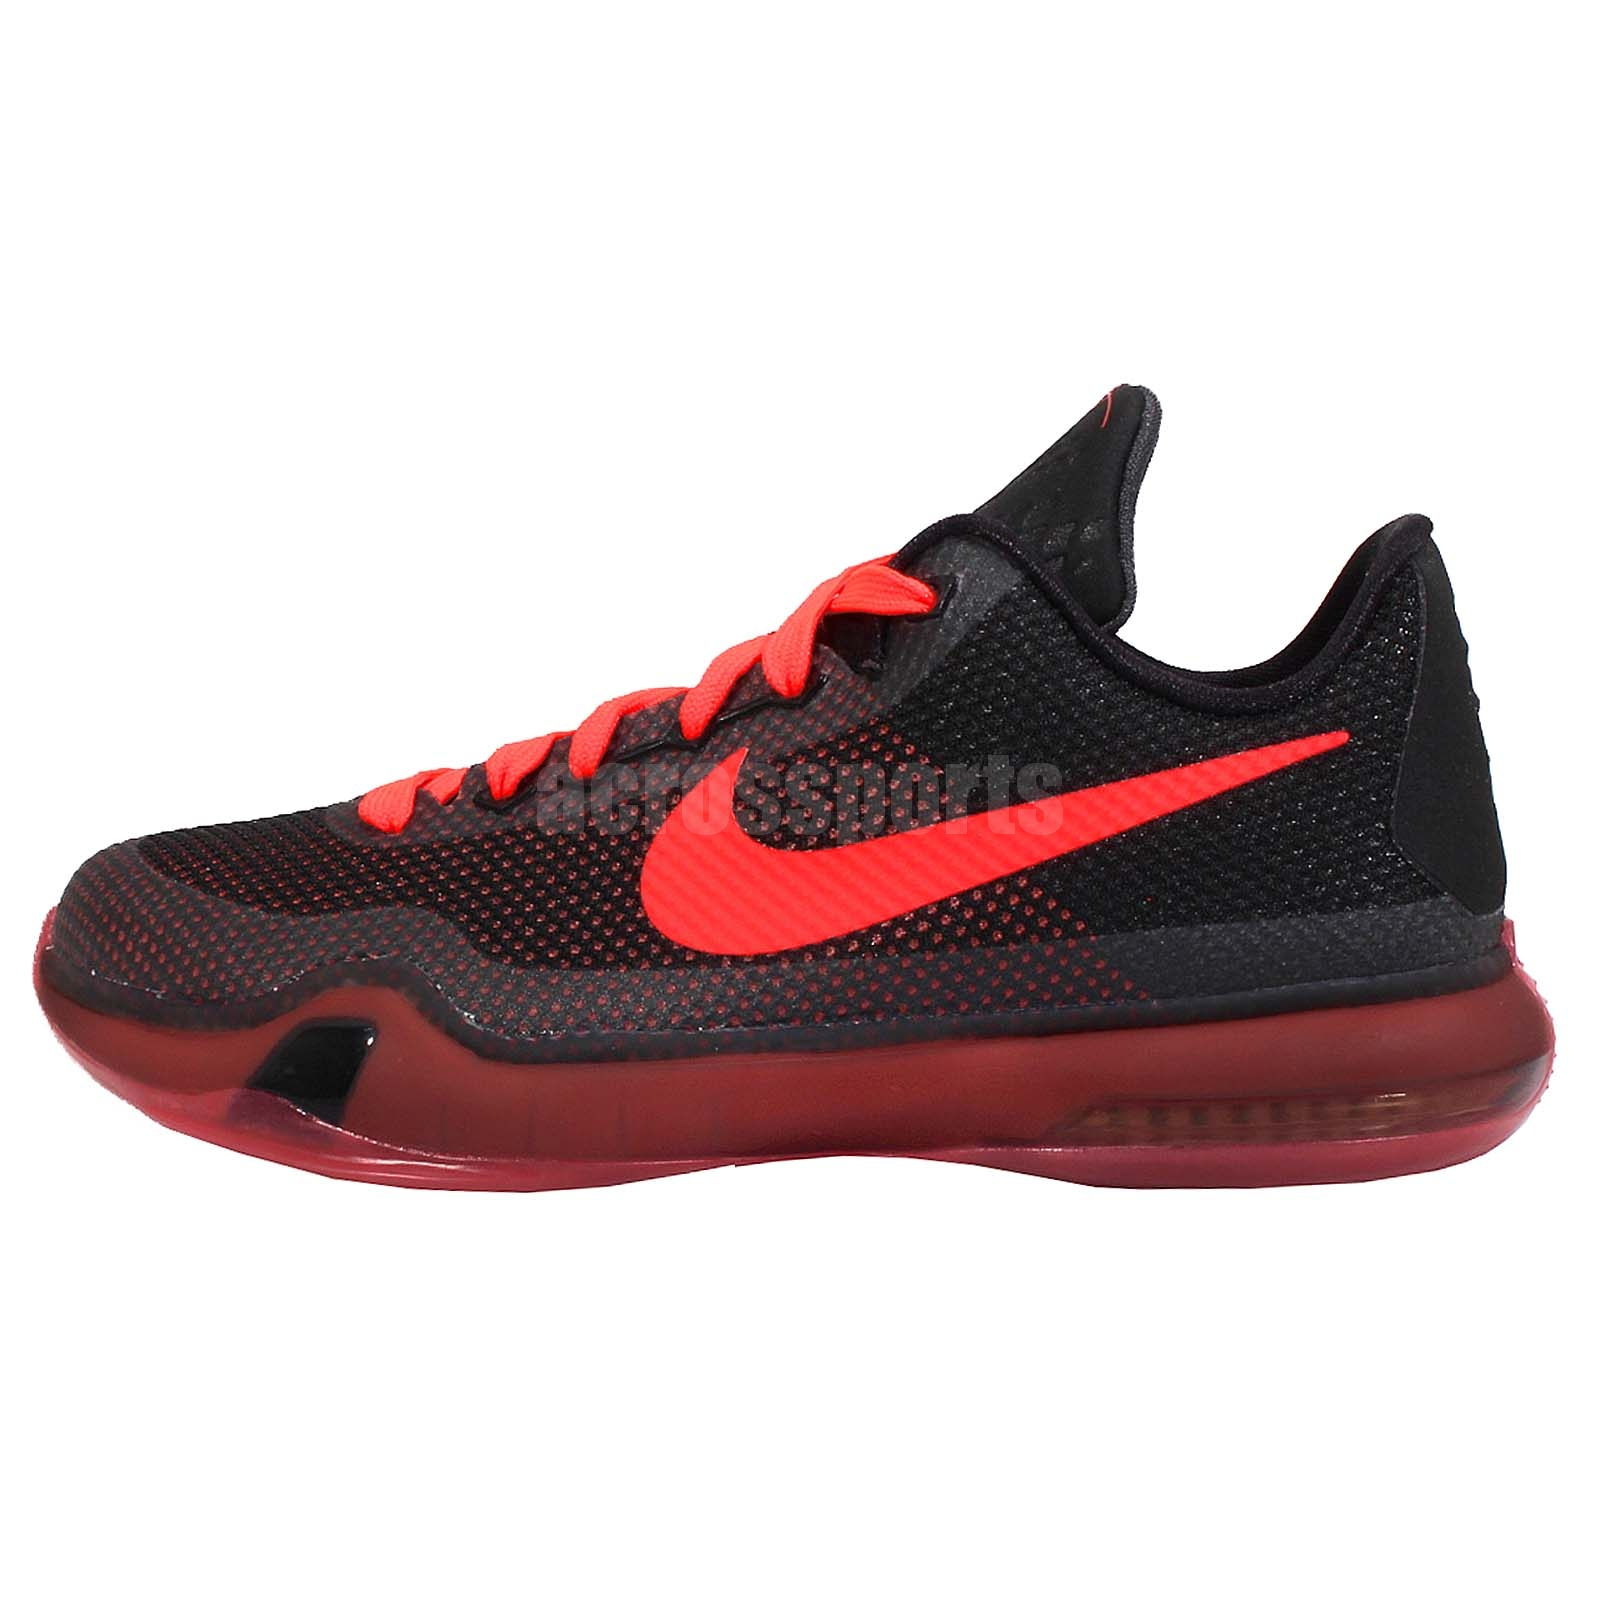 Nike Youth Girls Basketball Shoes